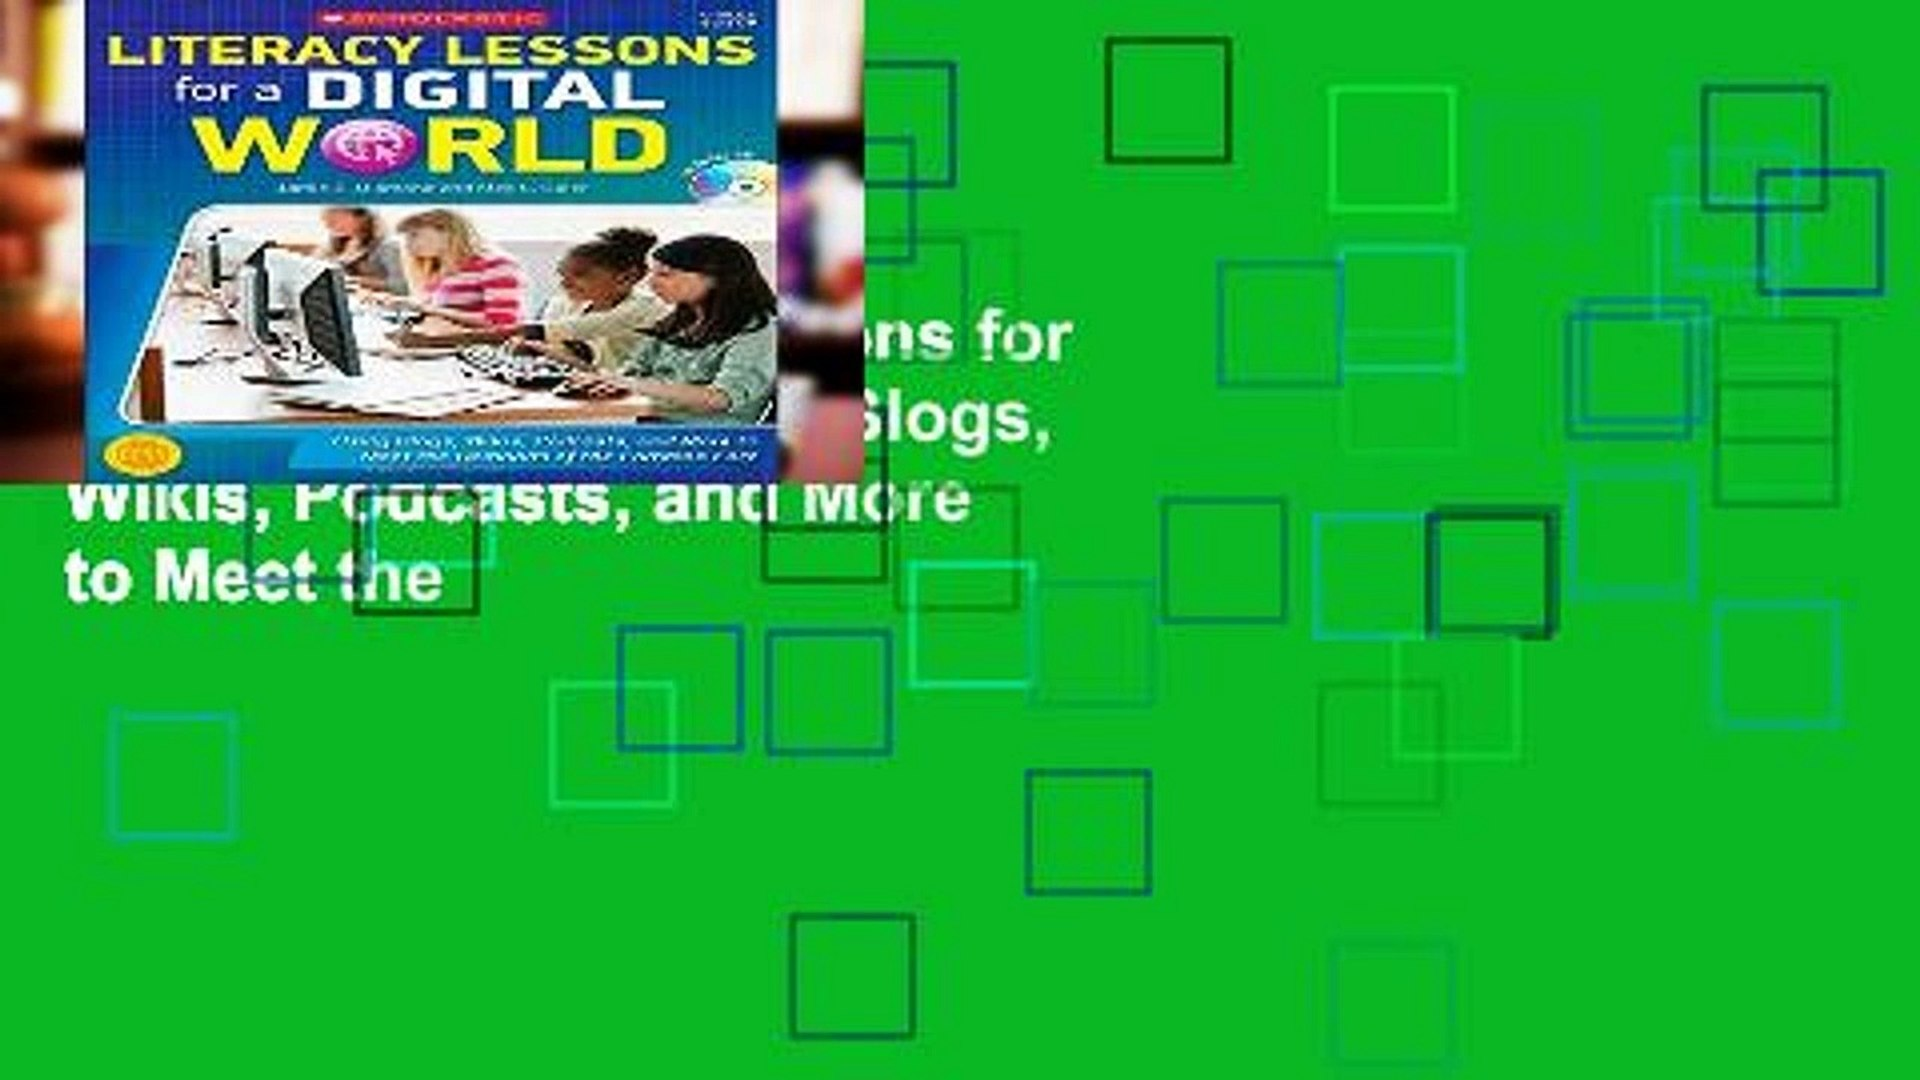 Reading Literacy Lessons for a Digital World: Using Blogs, Wikis, Podcasts, and More to Meet the